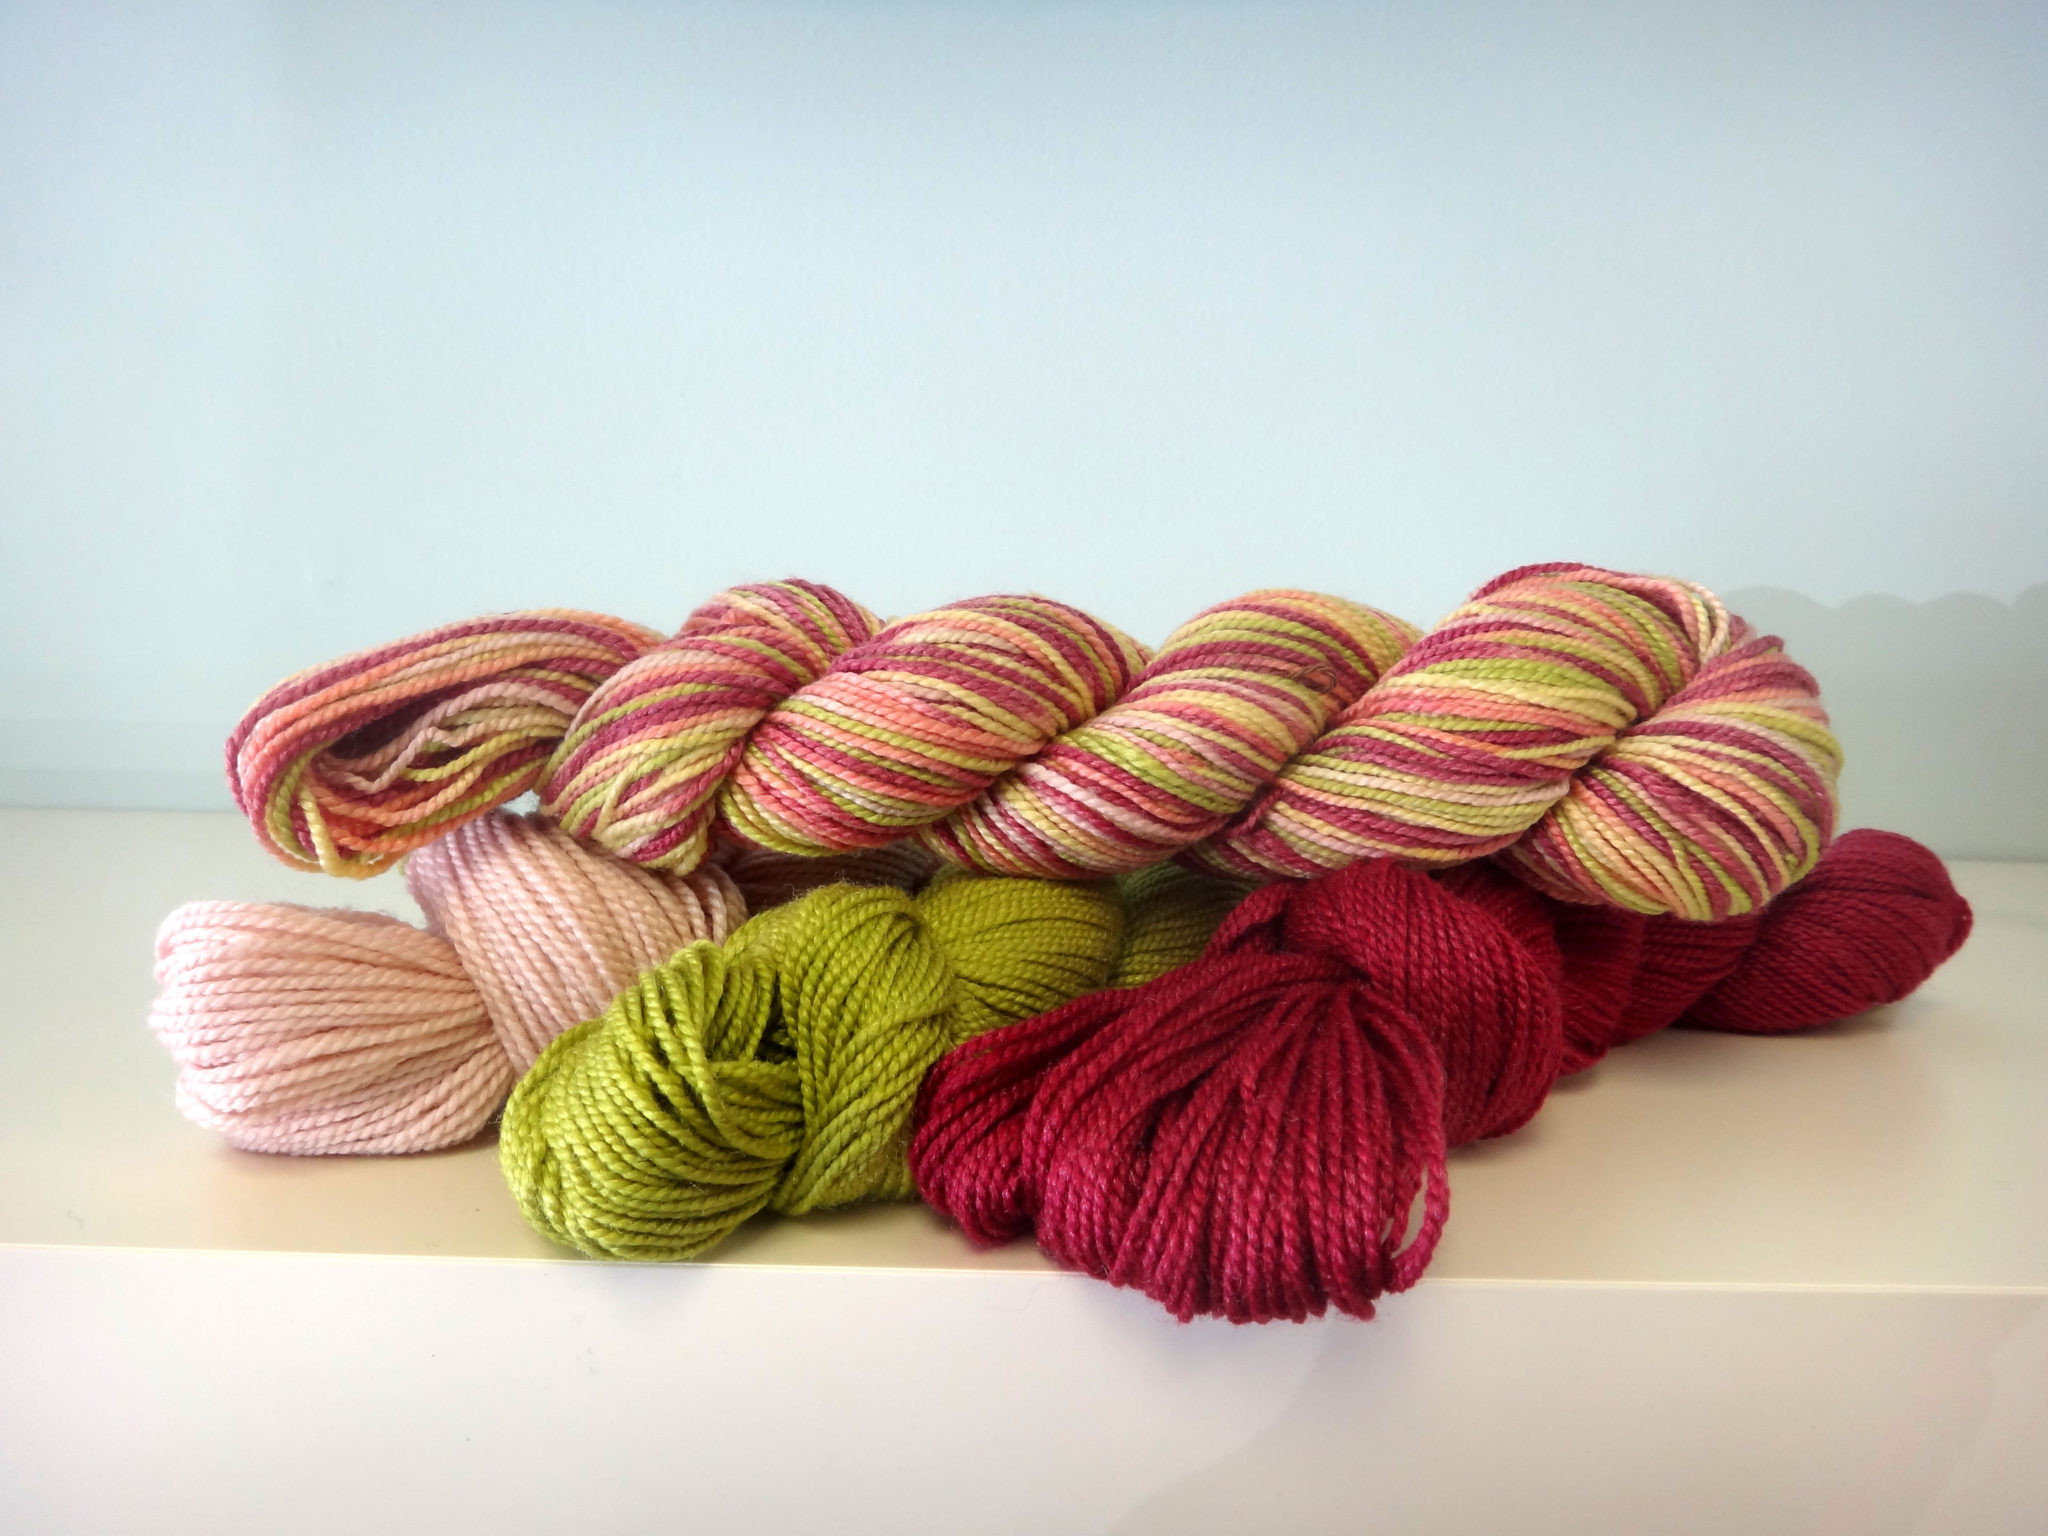 New Gallery Unwind Yarn Shop Yarn Outlet Of Amazing 50 Photos Yarn Outlet